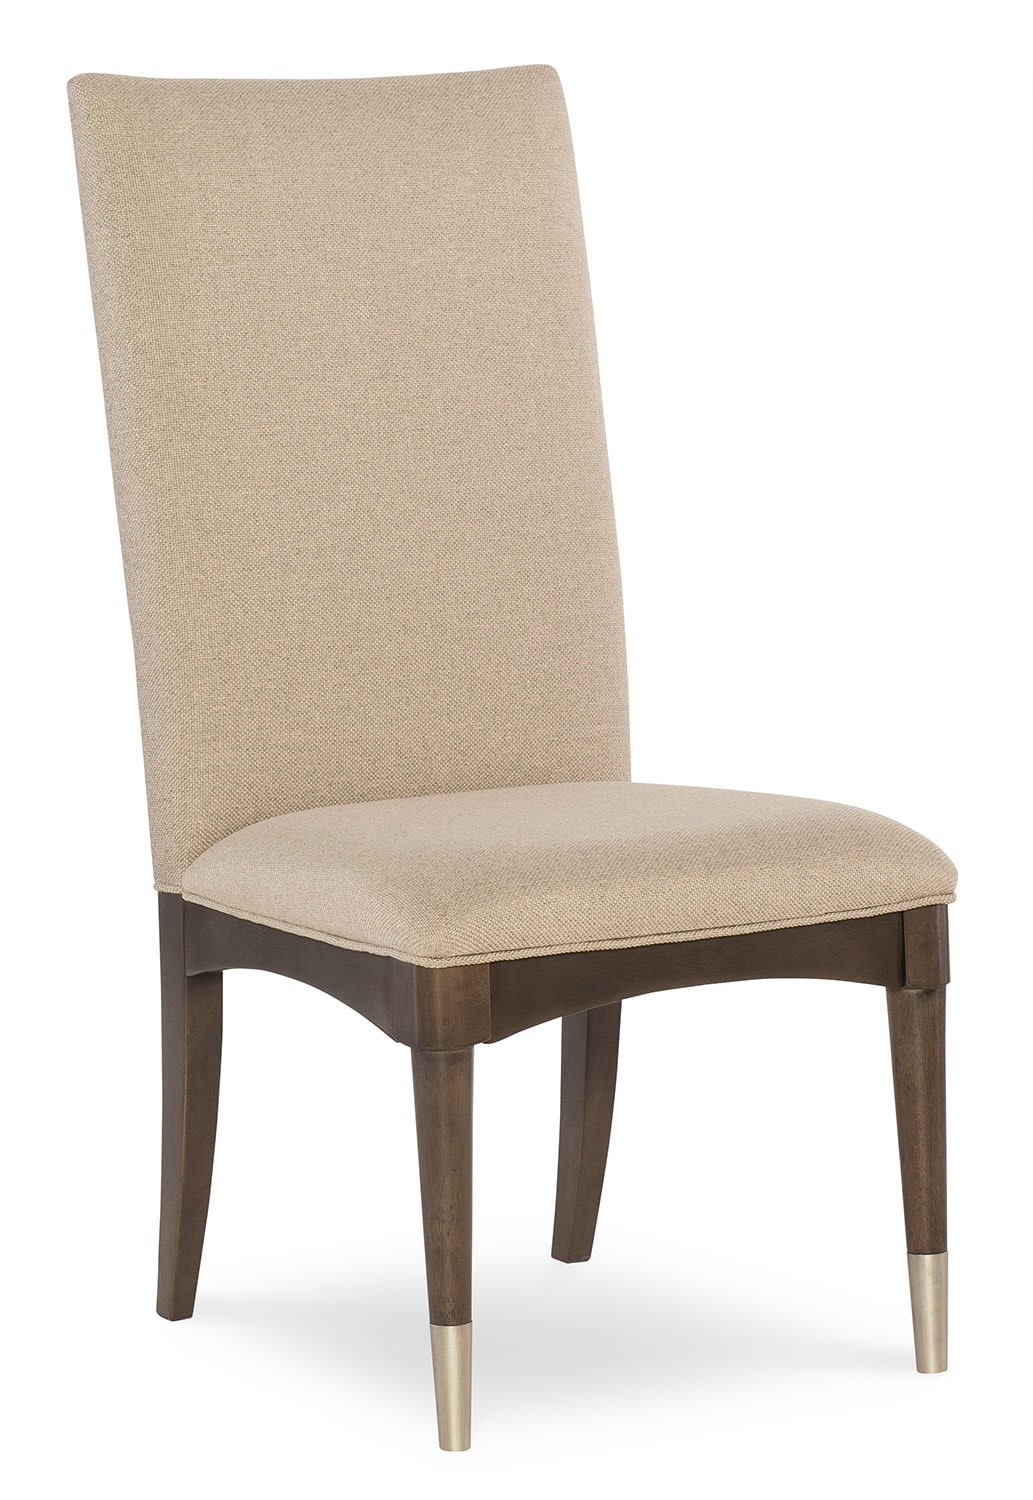 Rachael Ray Soho Upholstered Back Side Chair - Ash Brown